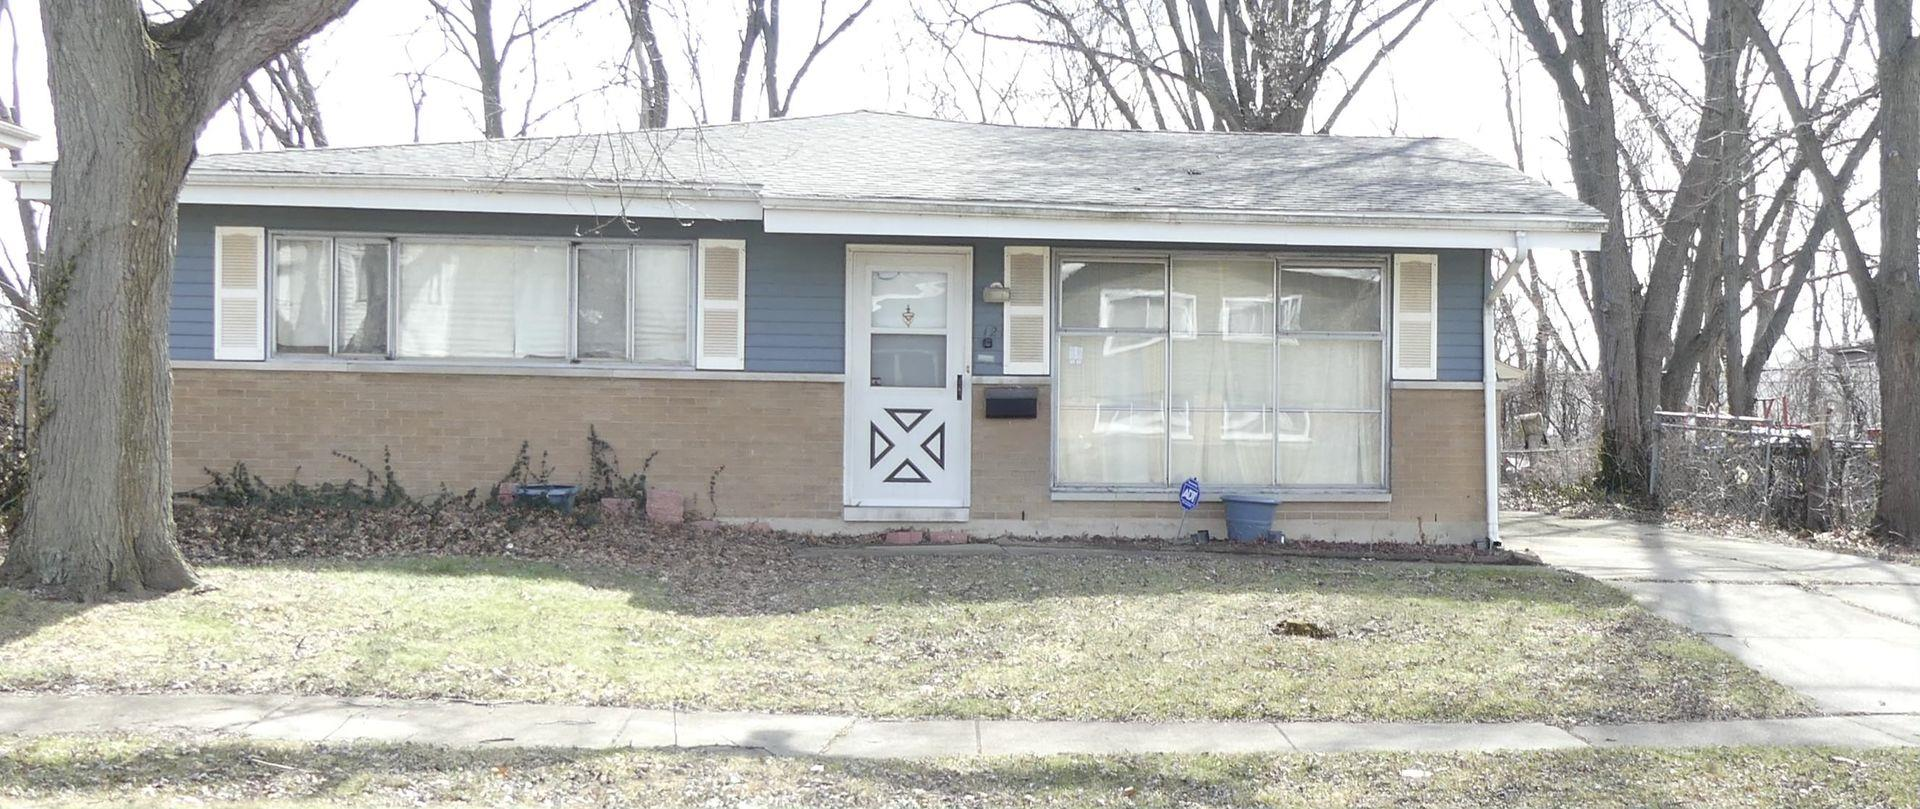 121 Hay Street, Park Forest, IL 60466 - #: 11020430